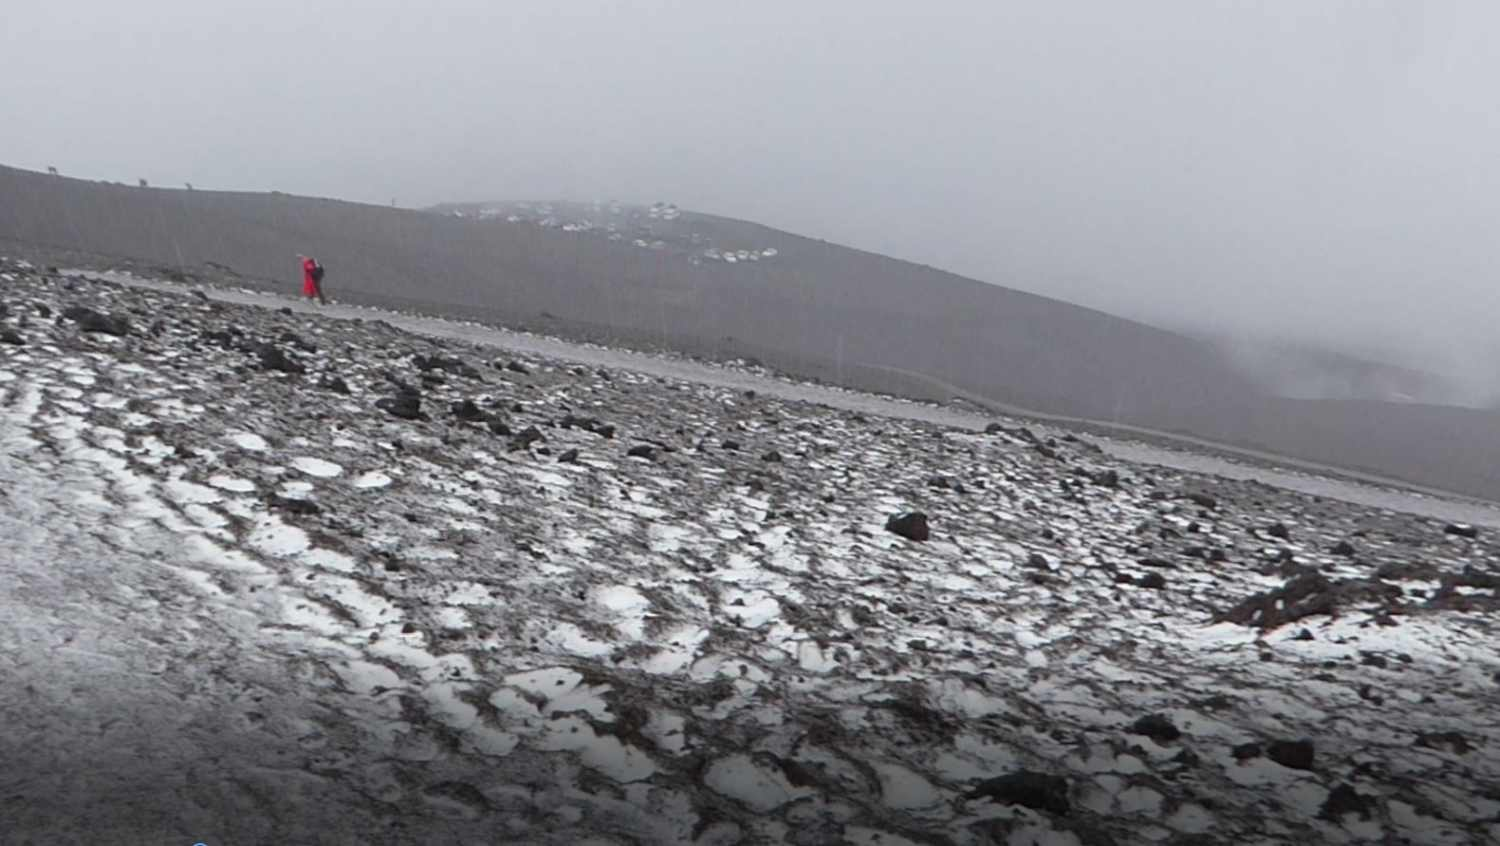 Ascent to the top of the Cotopaxi